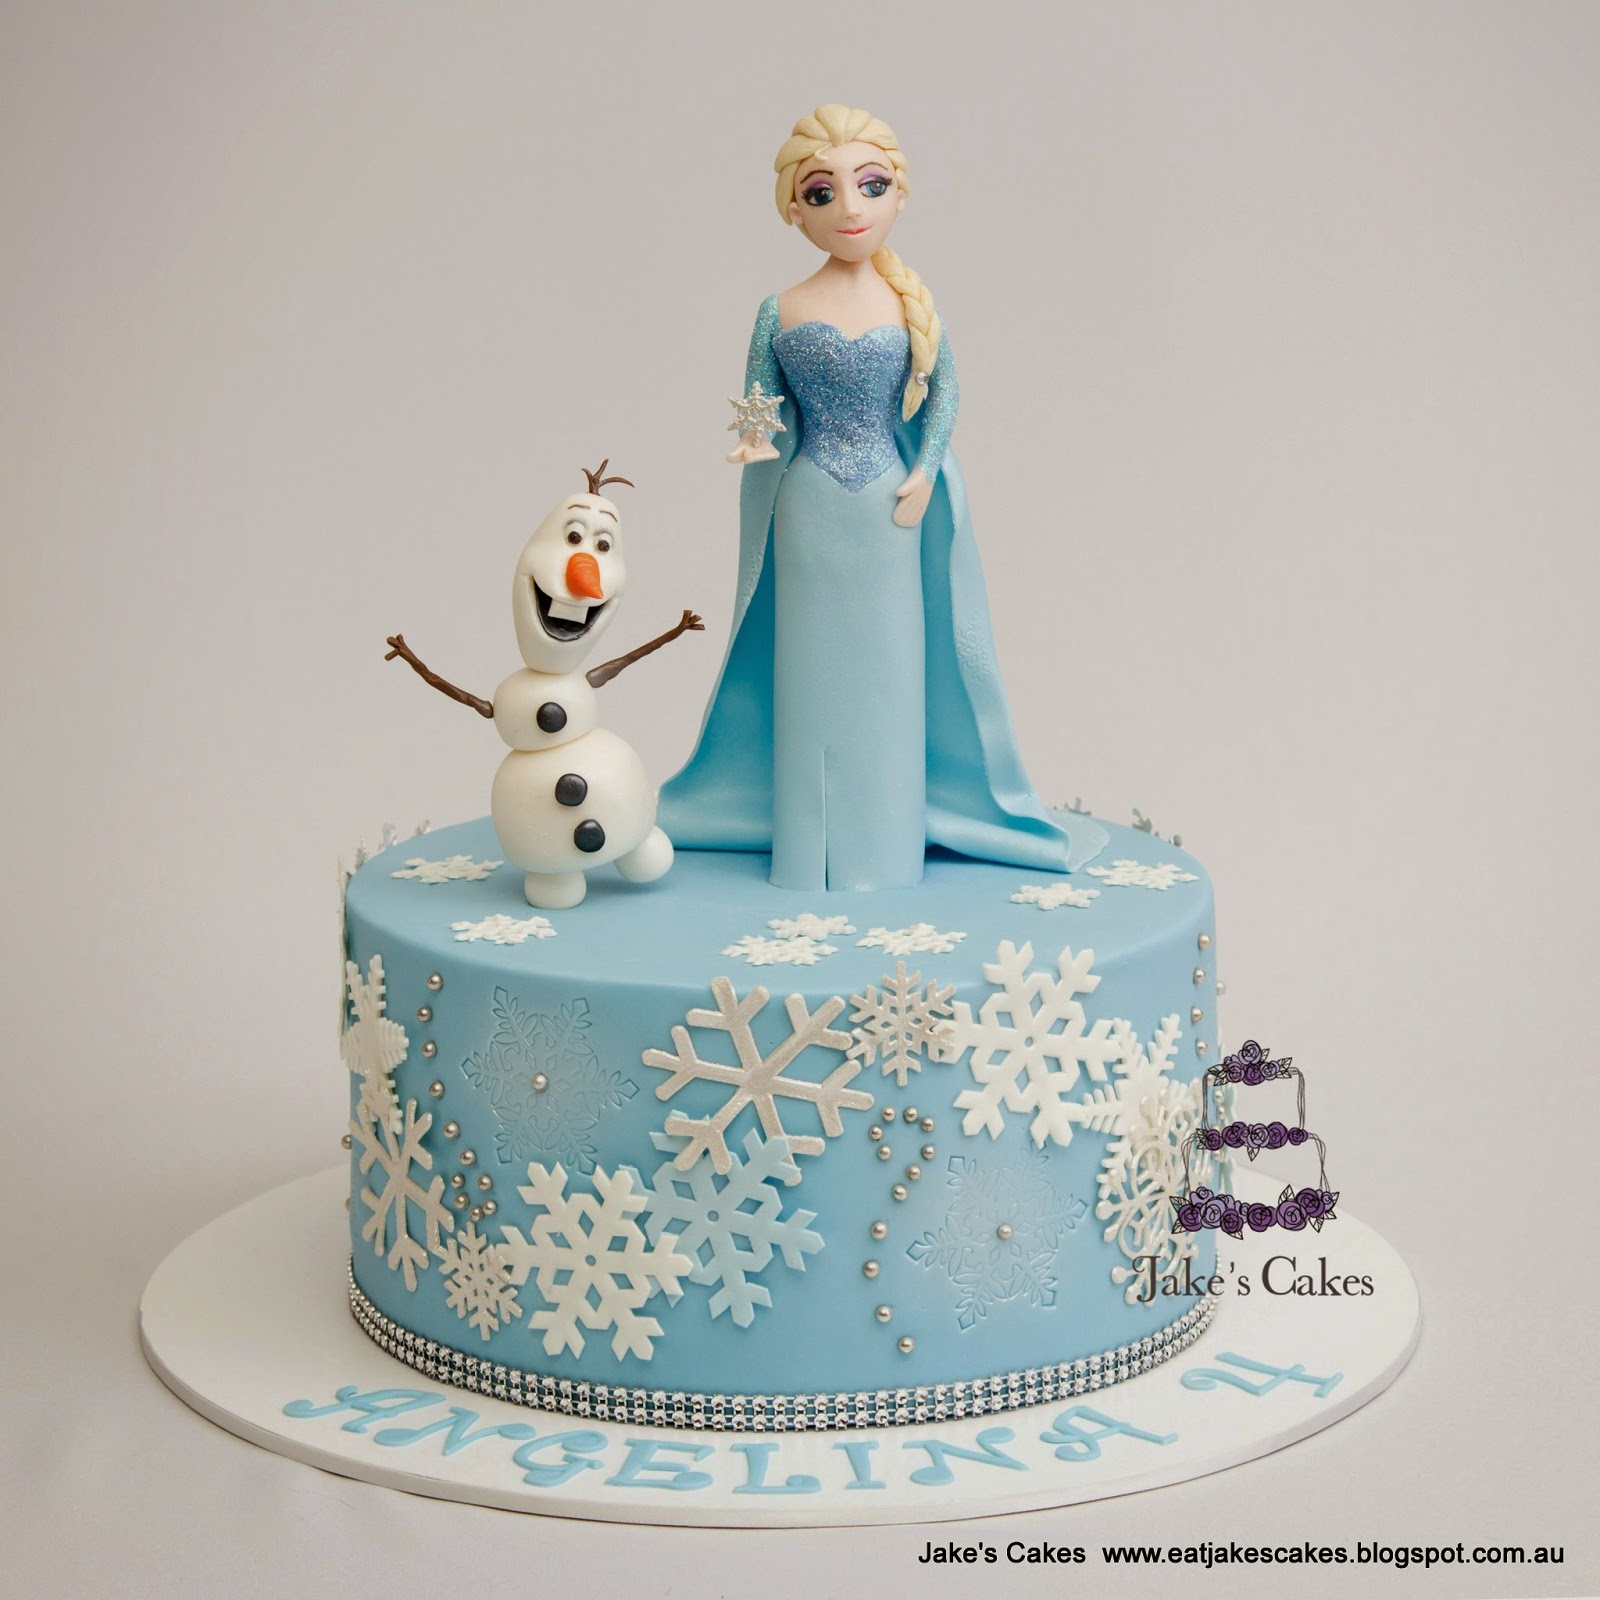 11 Photos of Elsa And Olaf Cakes